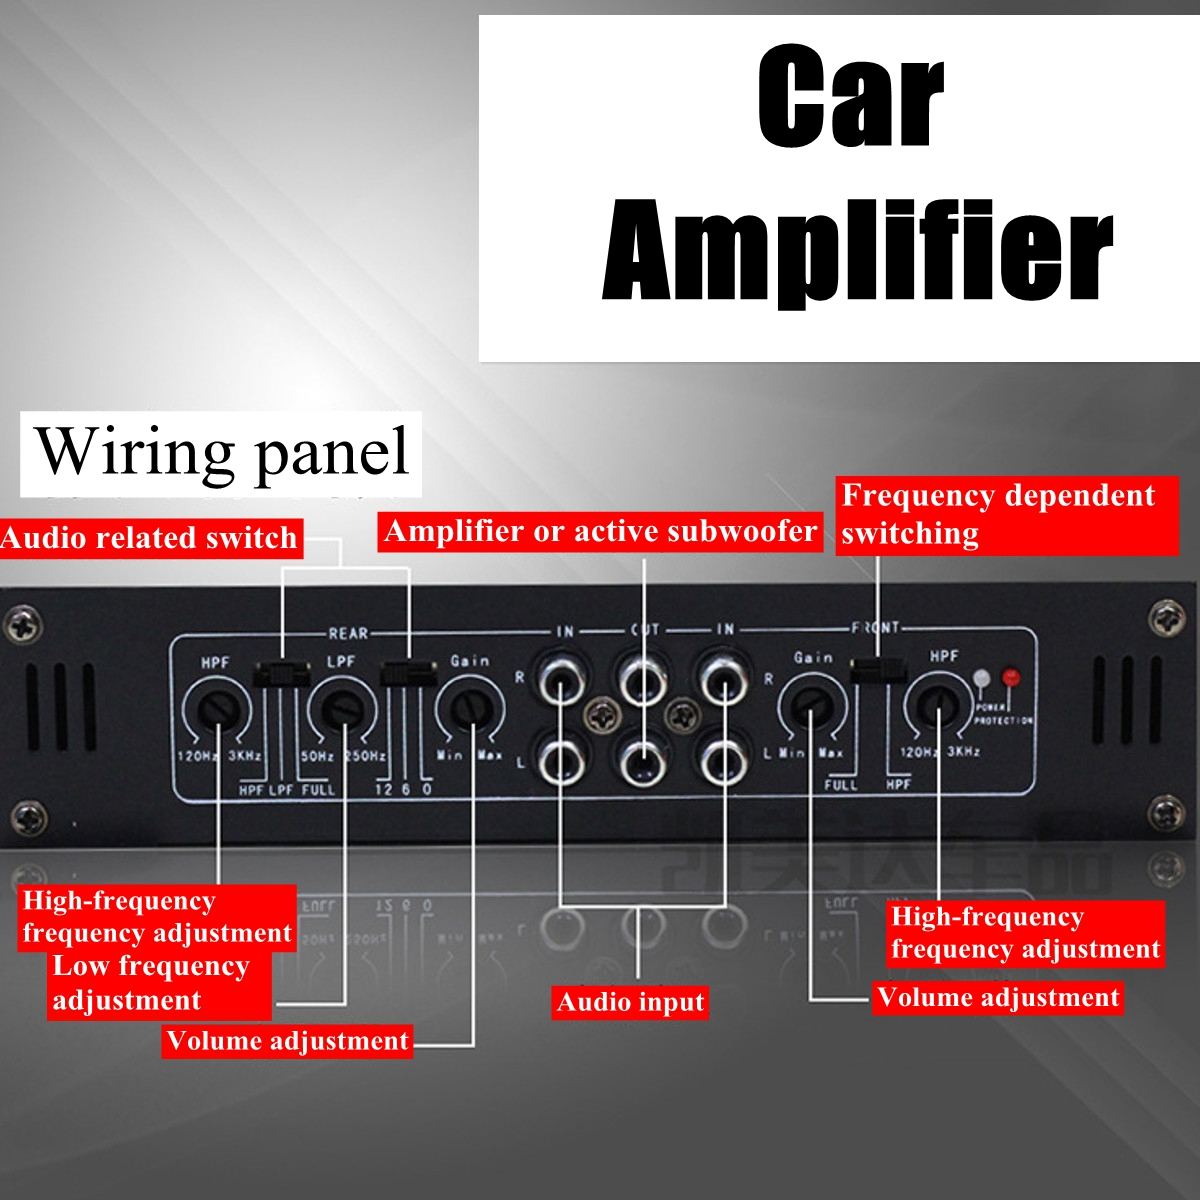 Buy Power Hifi Amplifier 4ch 3800w Audio Stereo 12v Motorola Circuit Design Amp Speaker 2 Ohm Stable Circuits Bass Booster Tri Mode Output For Ktv Home Car From